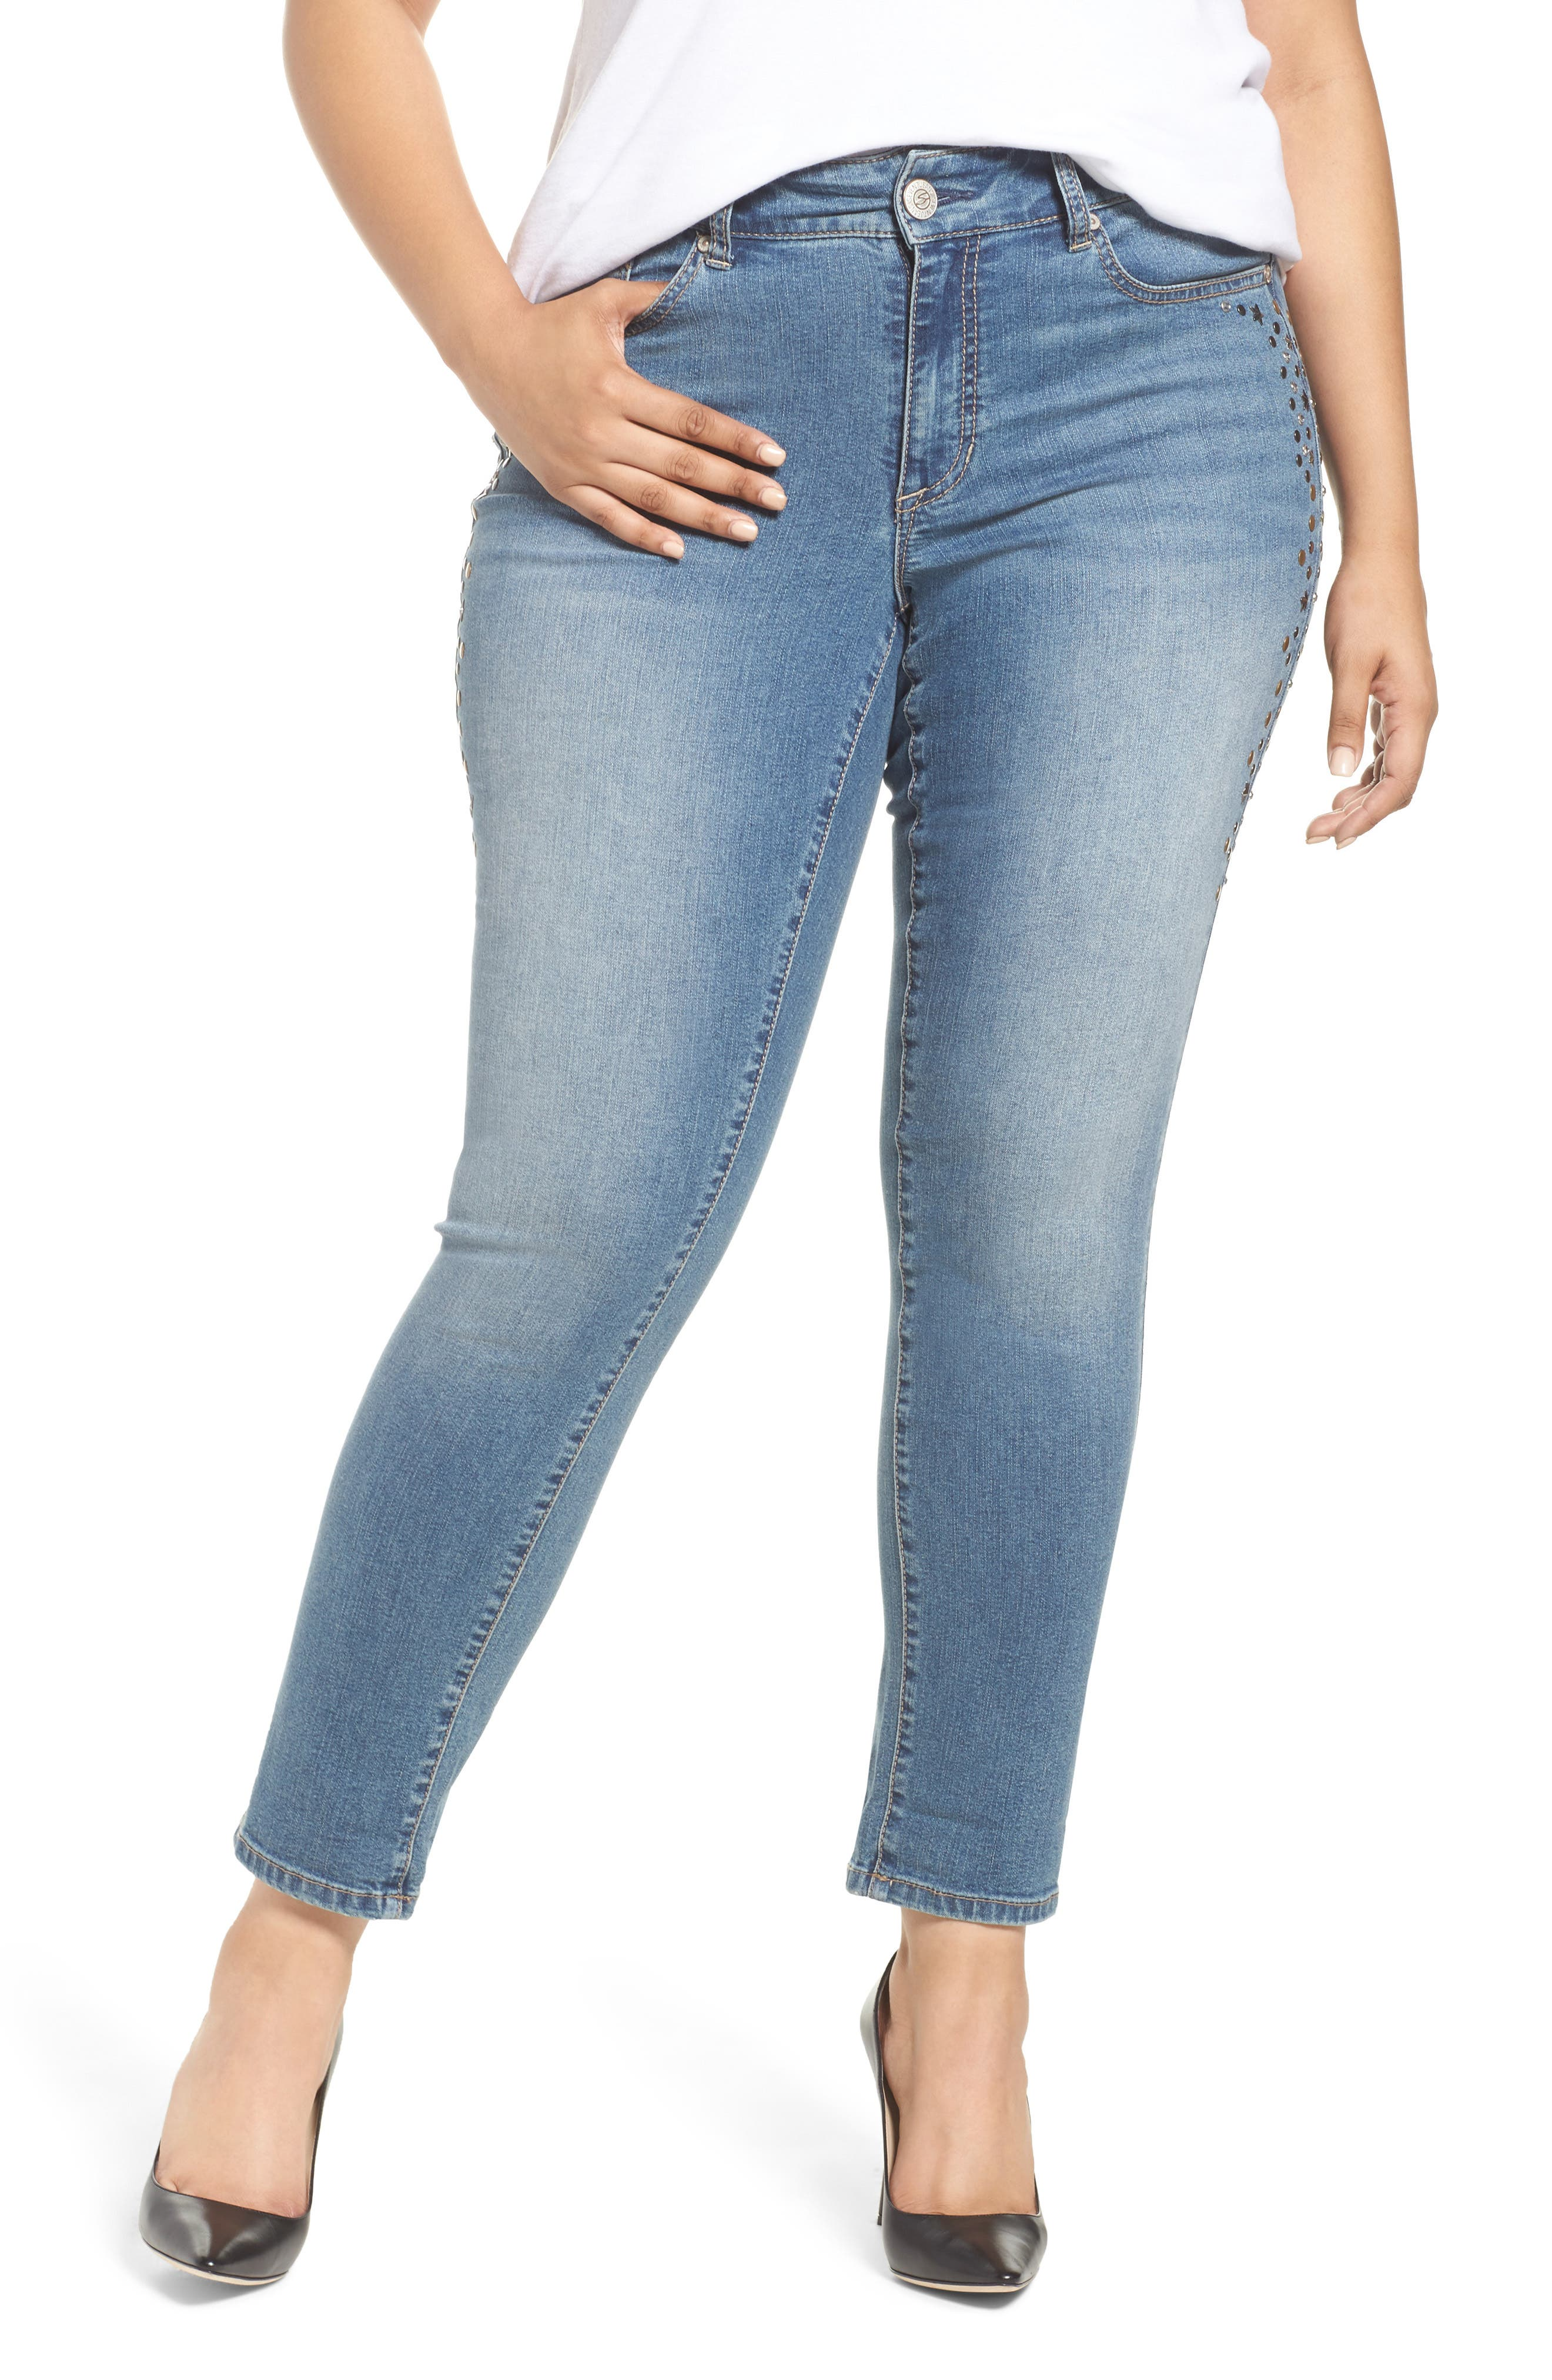 Seven7 Stone Detail Skinny Jeans (Daphne) (Plus Size)